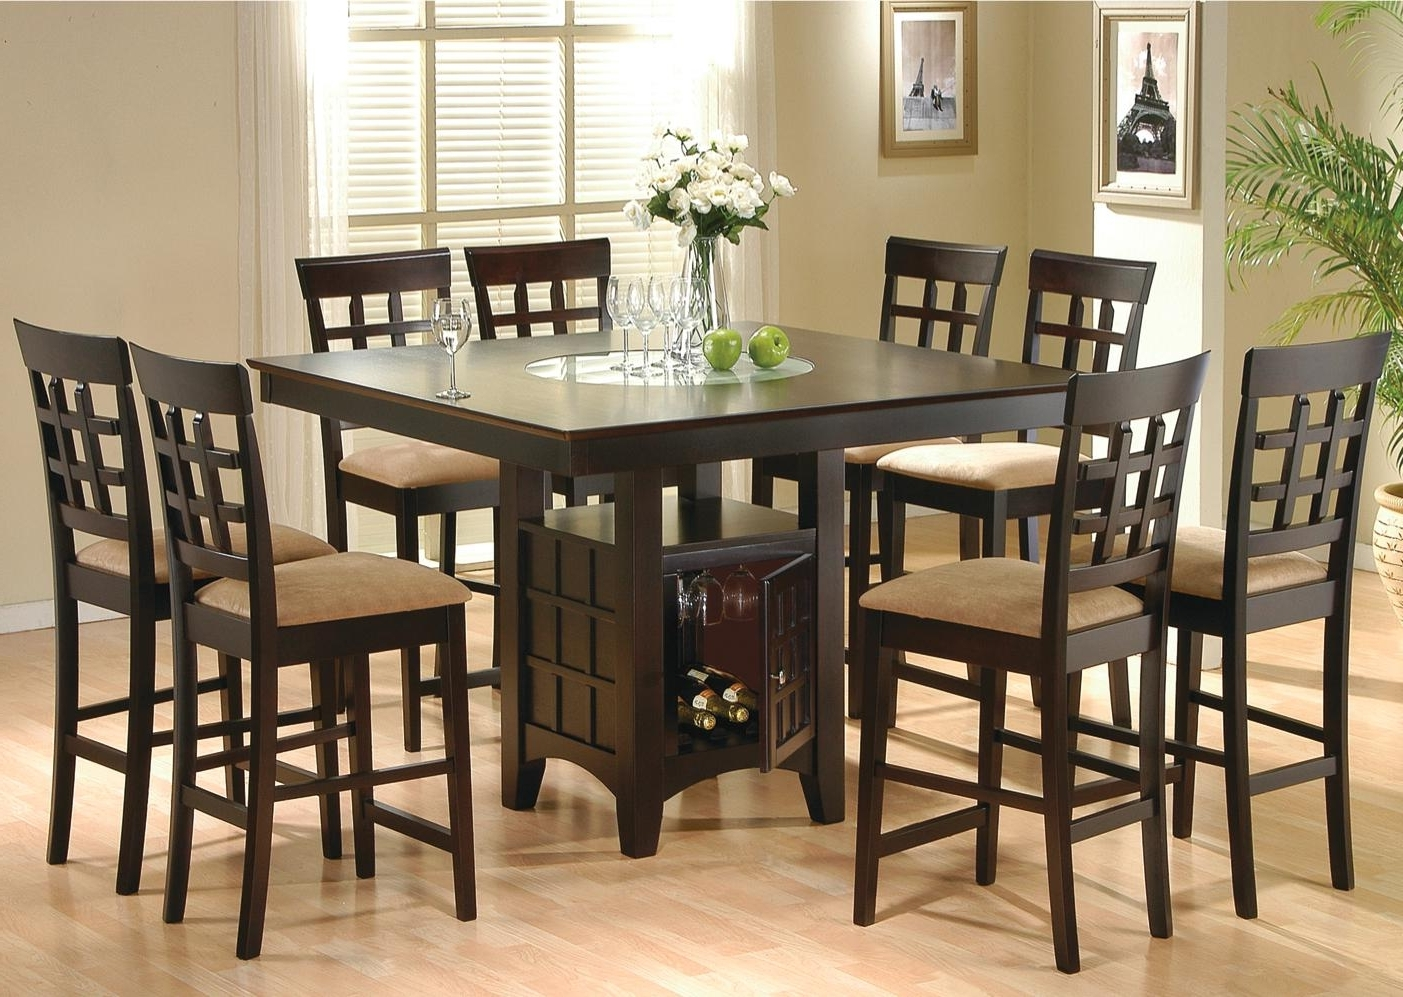 8 Chair Dining Room Set – Www (View 4 of 25)